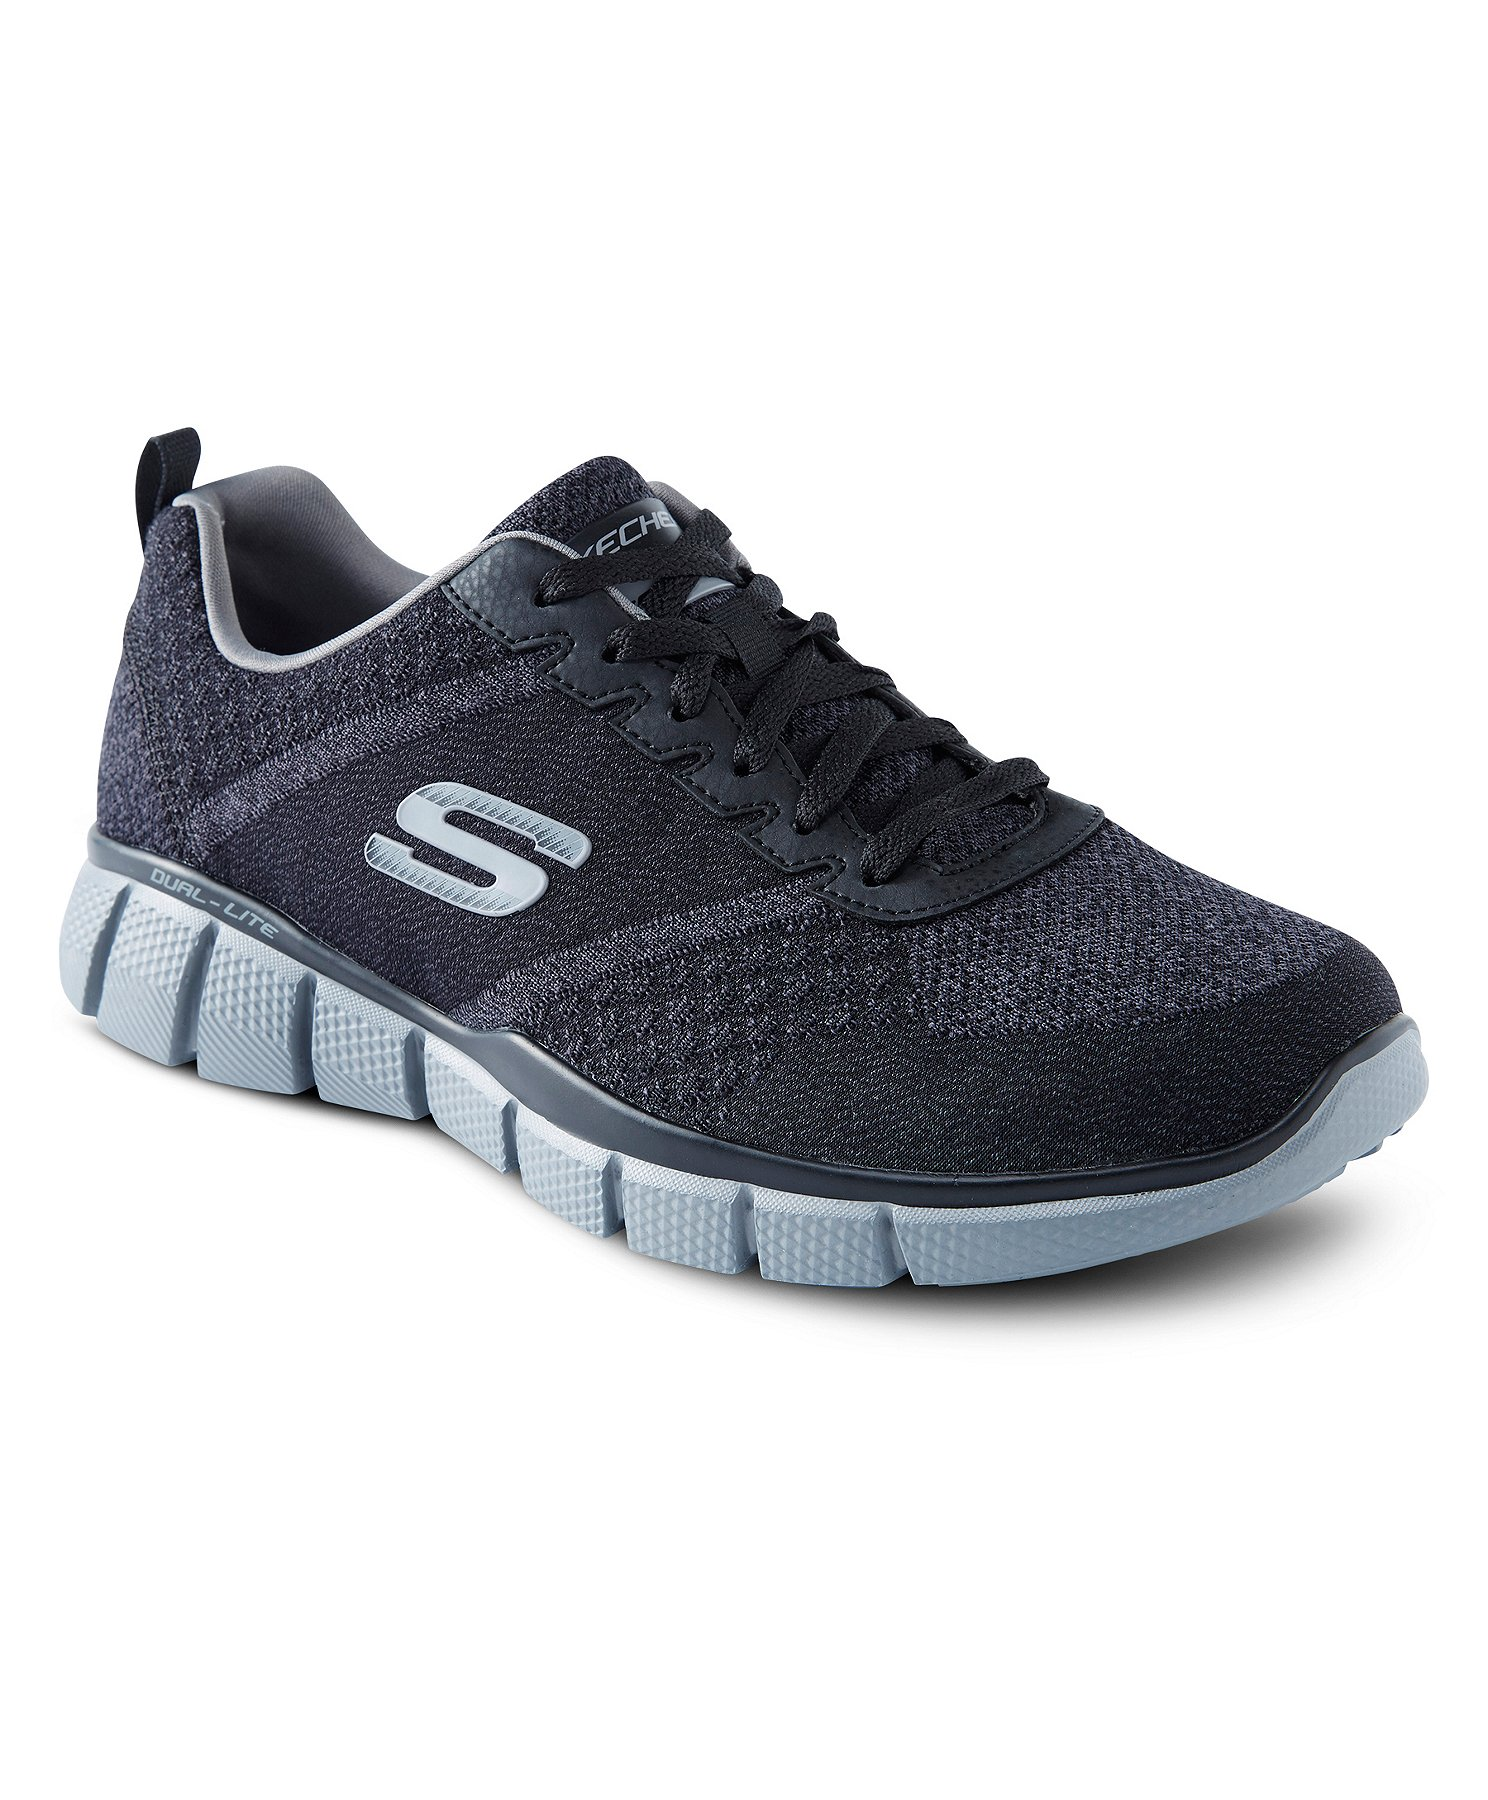 elegant in style Discover cheapest sale Men's True Balance Sneakers - Wide